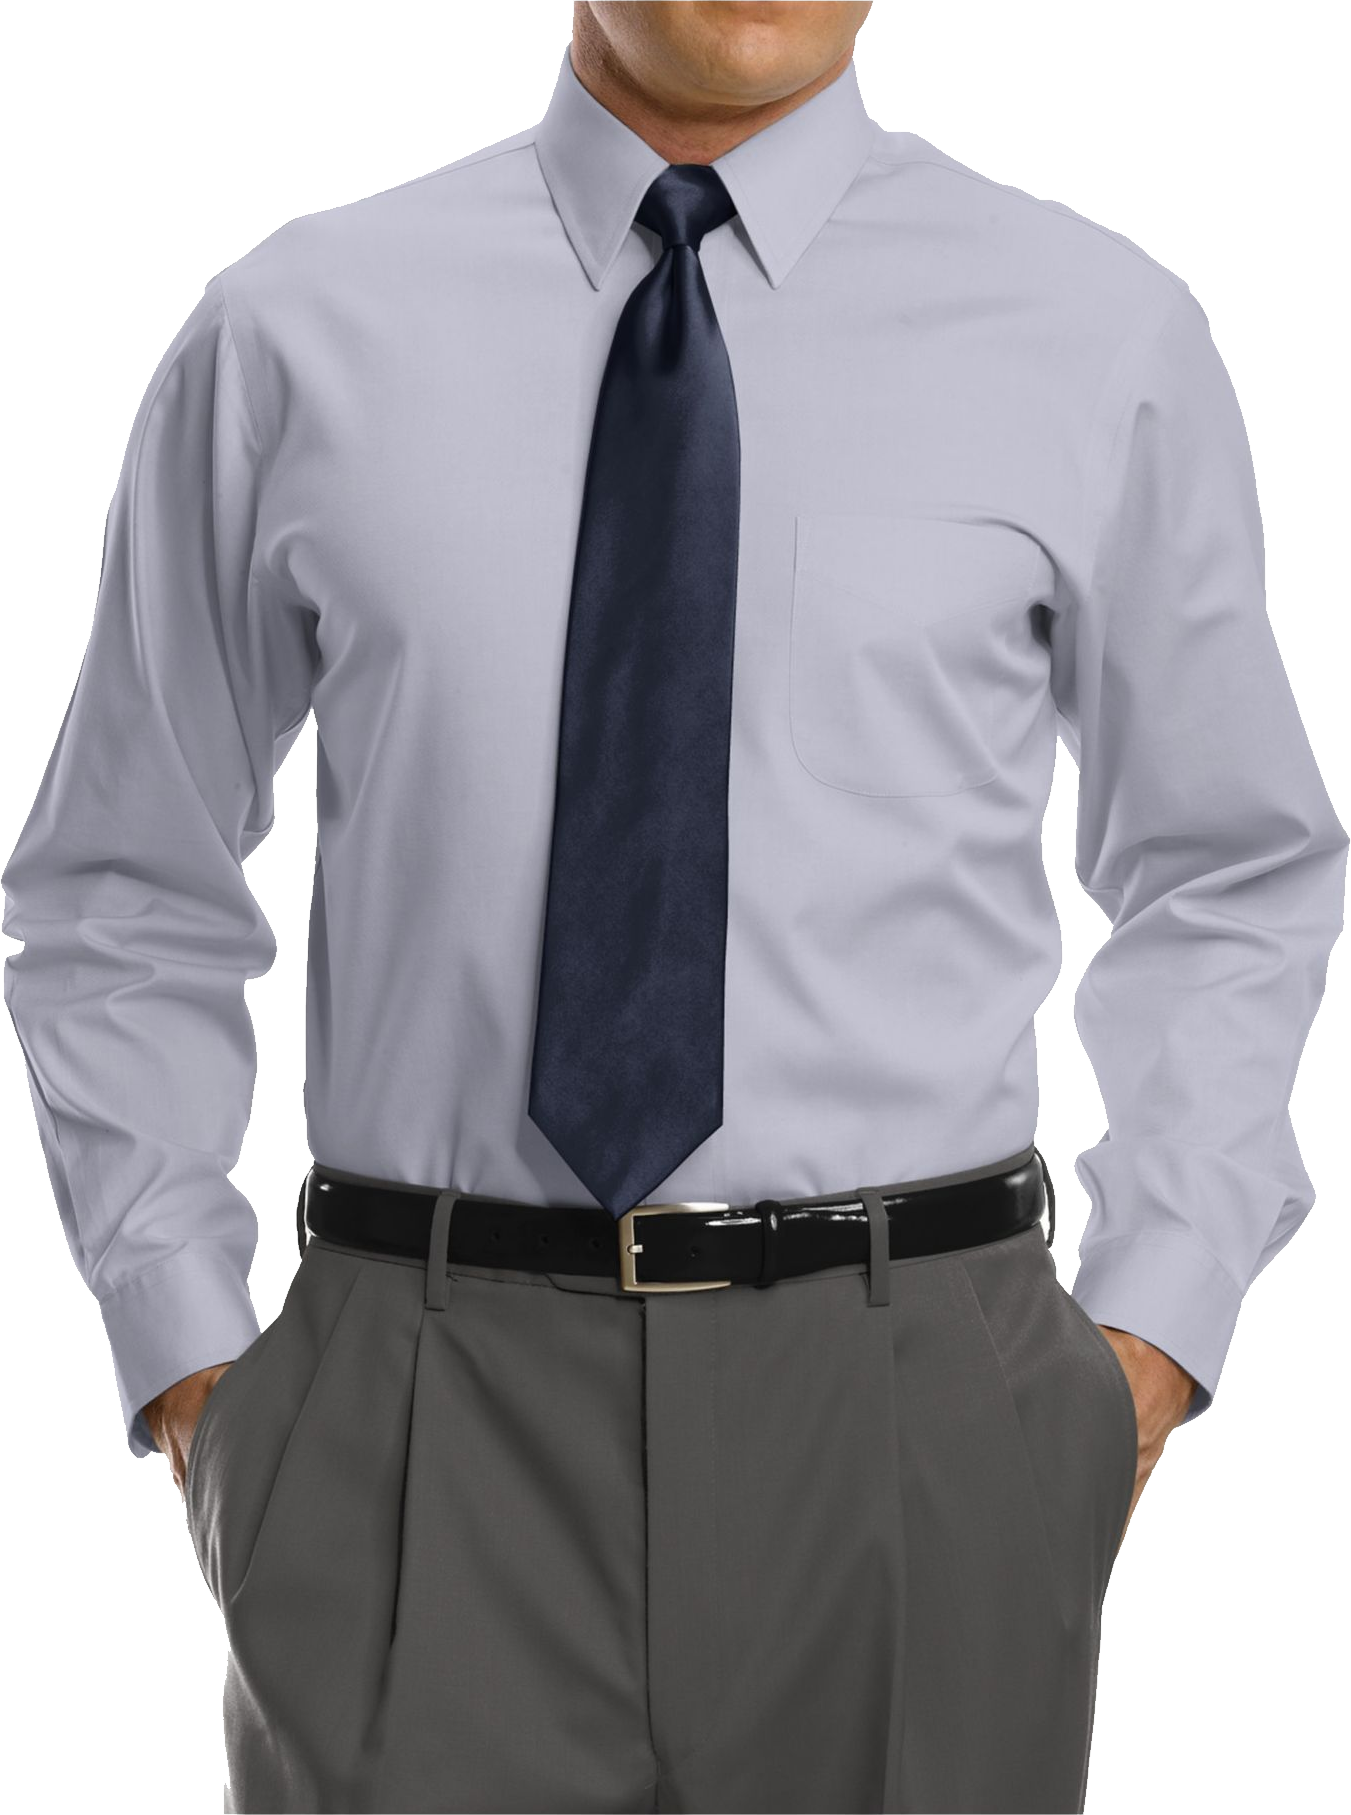 Of White Full Sleeve Shirt With BlackTie